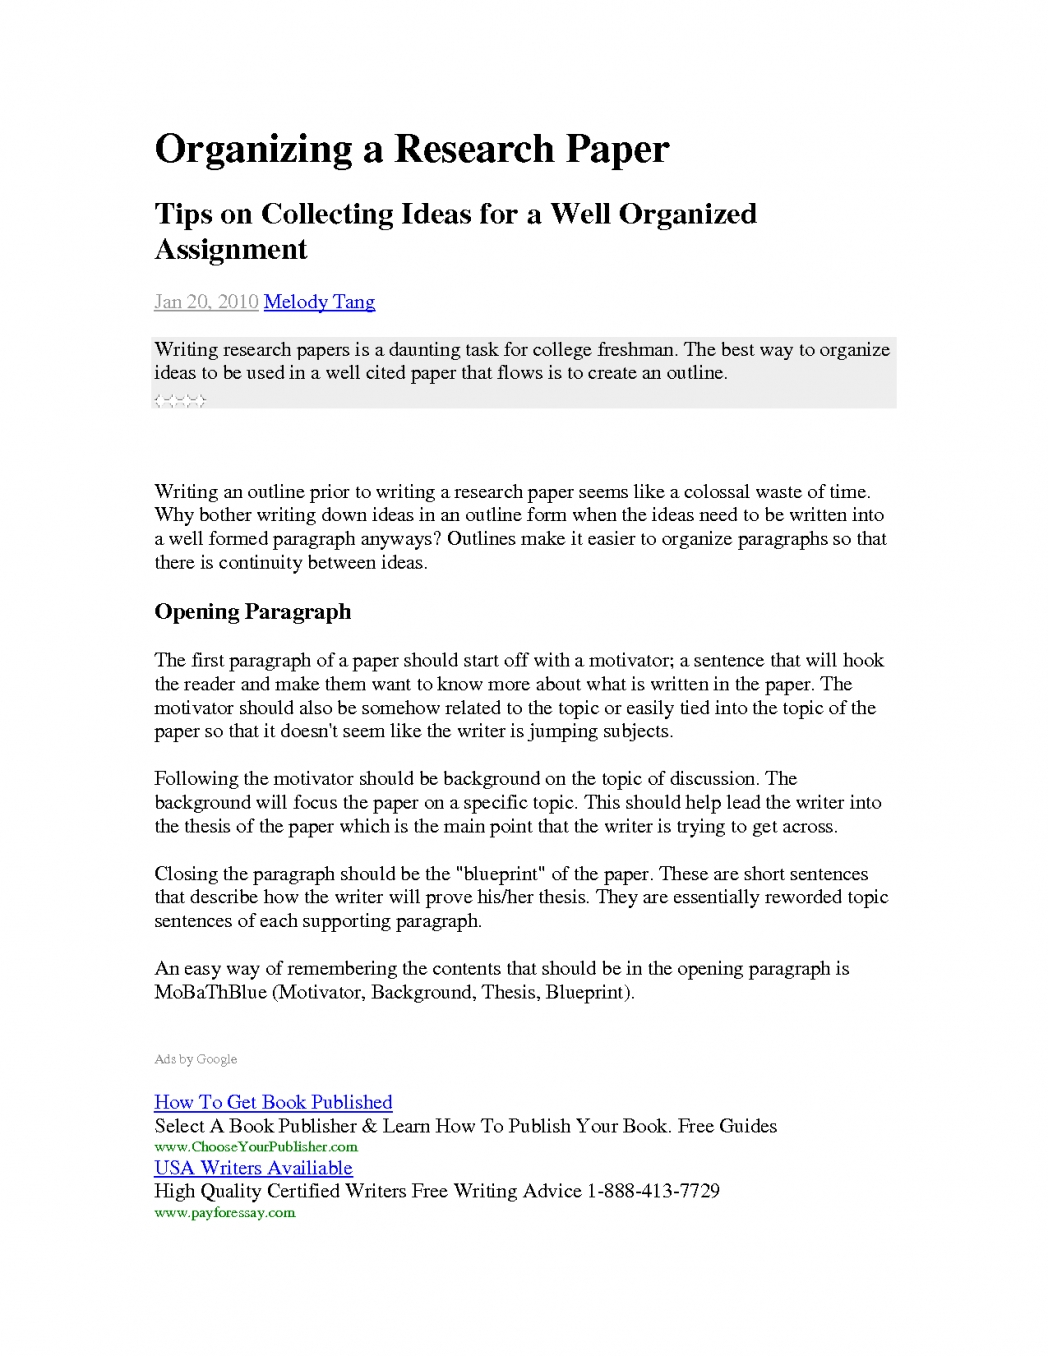 008 Research Paper How To Start Paragraph Conclusion Of Thesis Essay Beautiful Starting Pertaining Examples For Papers Stirring A New In Your Introduction On An Opening Full